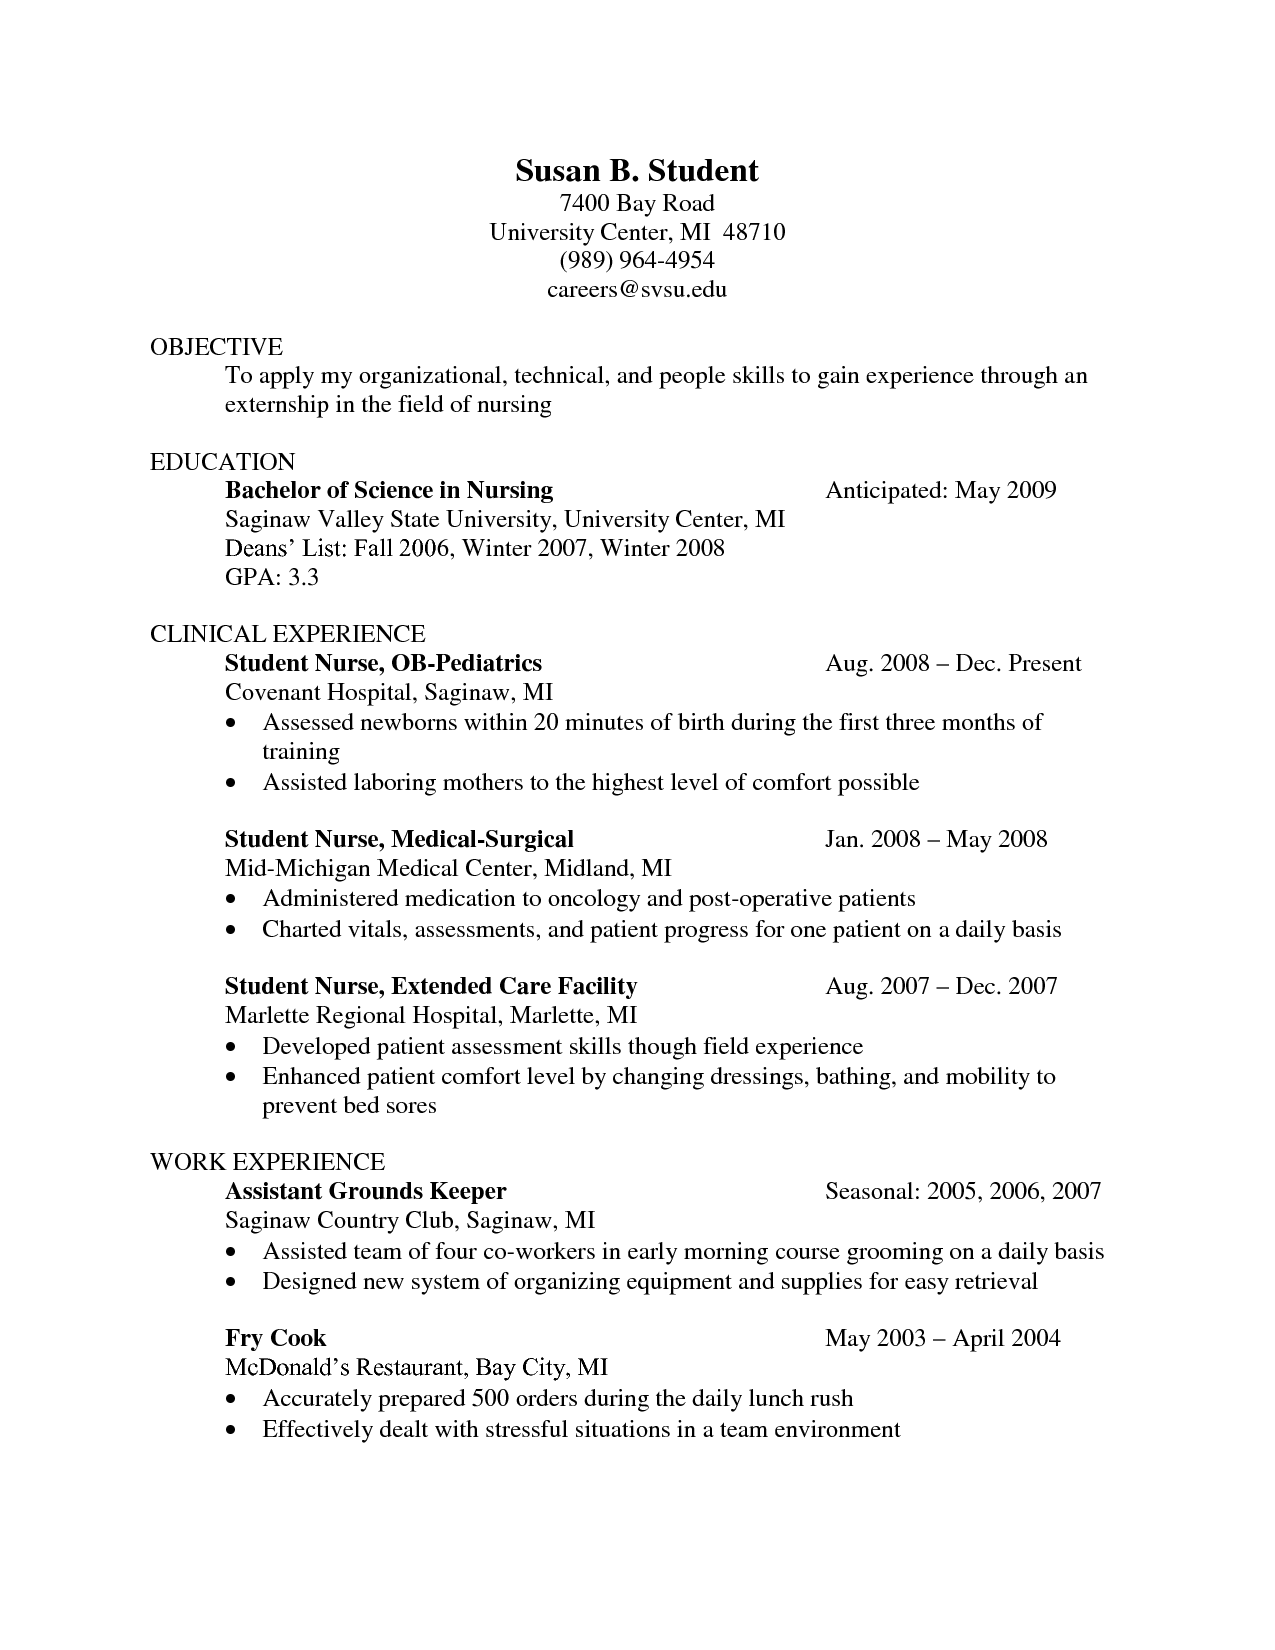 Oncology Nurse Resume Templates   Http://www.resumecareer.info/oncology  Resume For Nursing Job